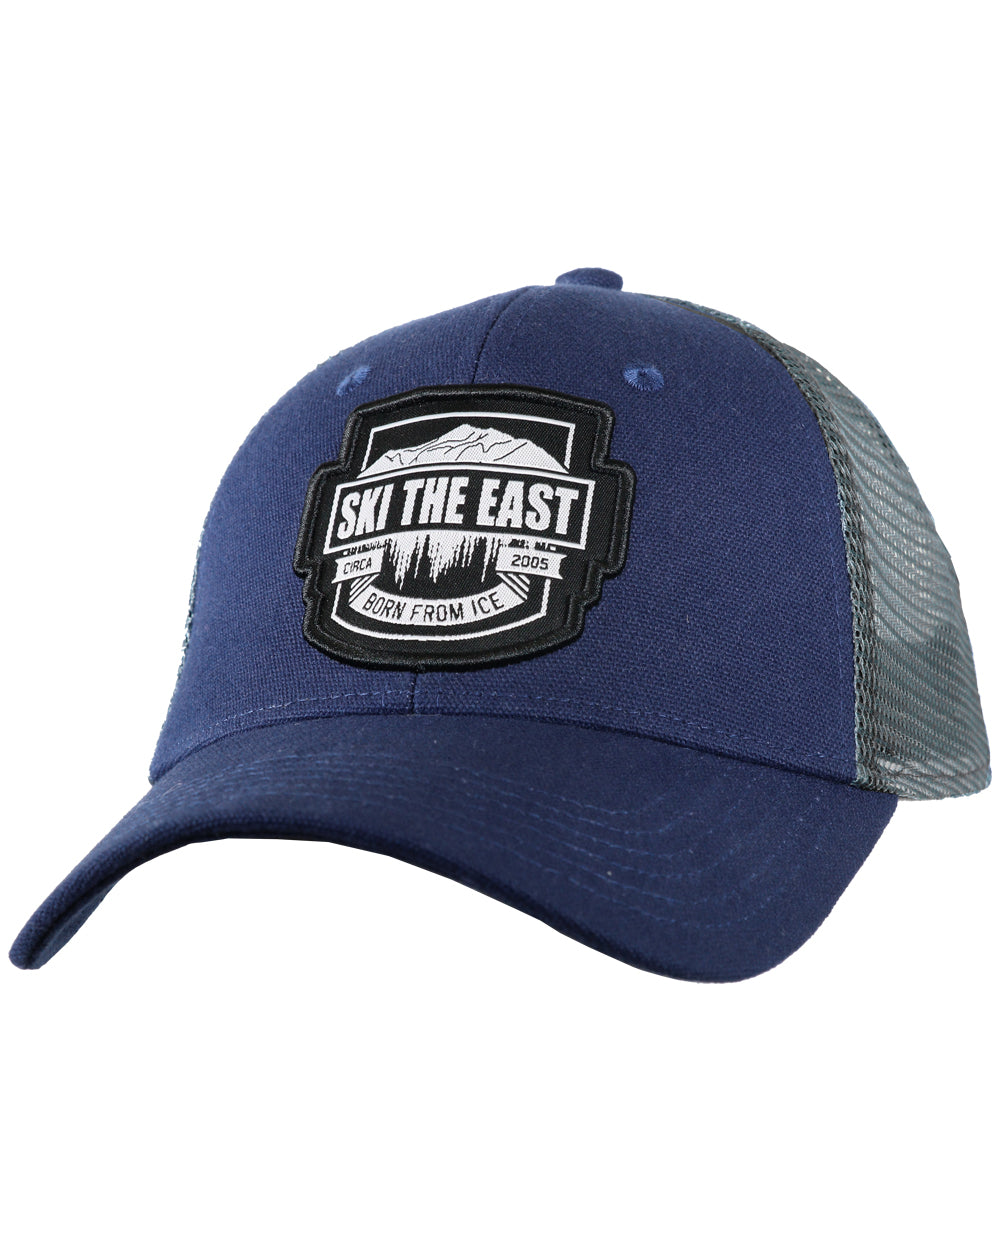 Born From Ice Canvas Trucker Hat - Navy - Ski The East b338690be2cc